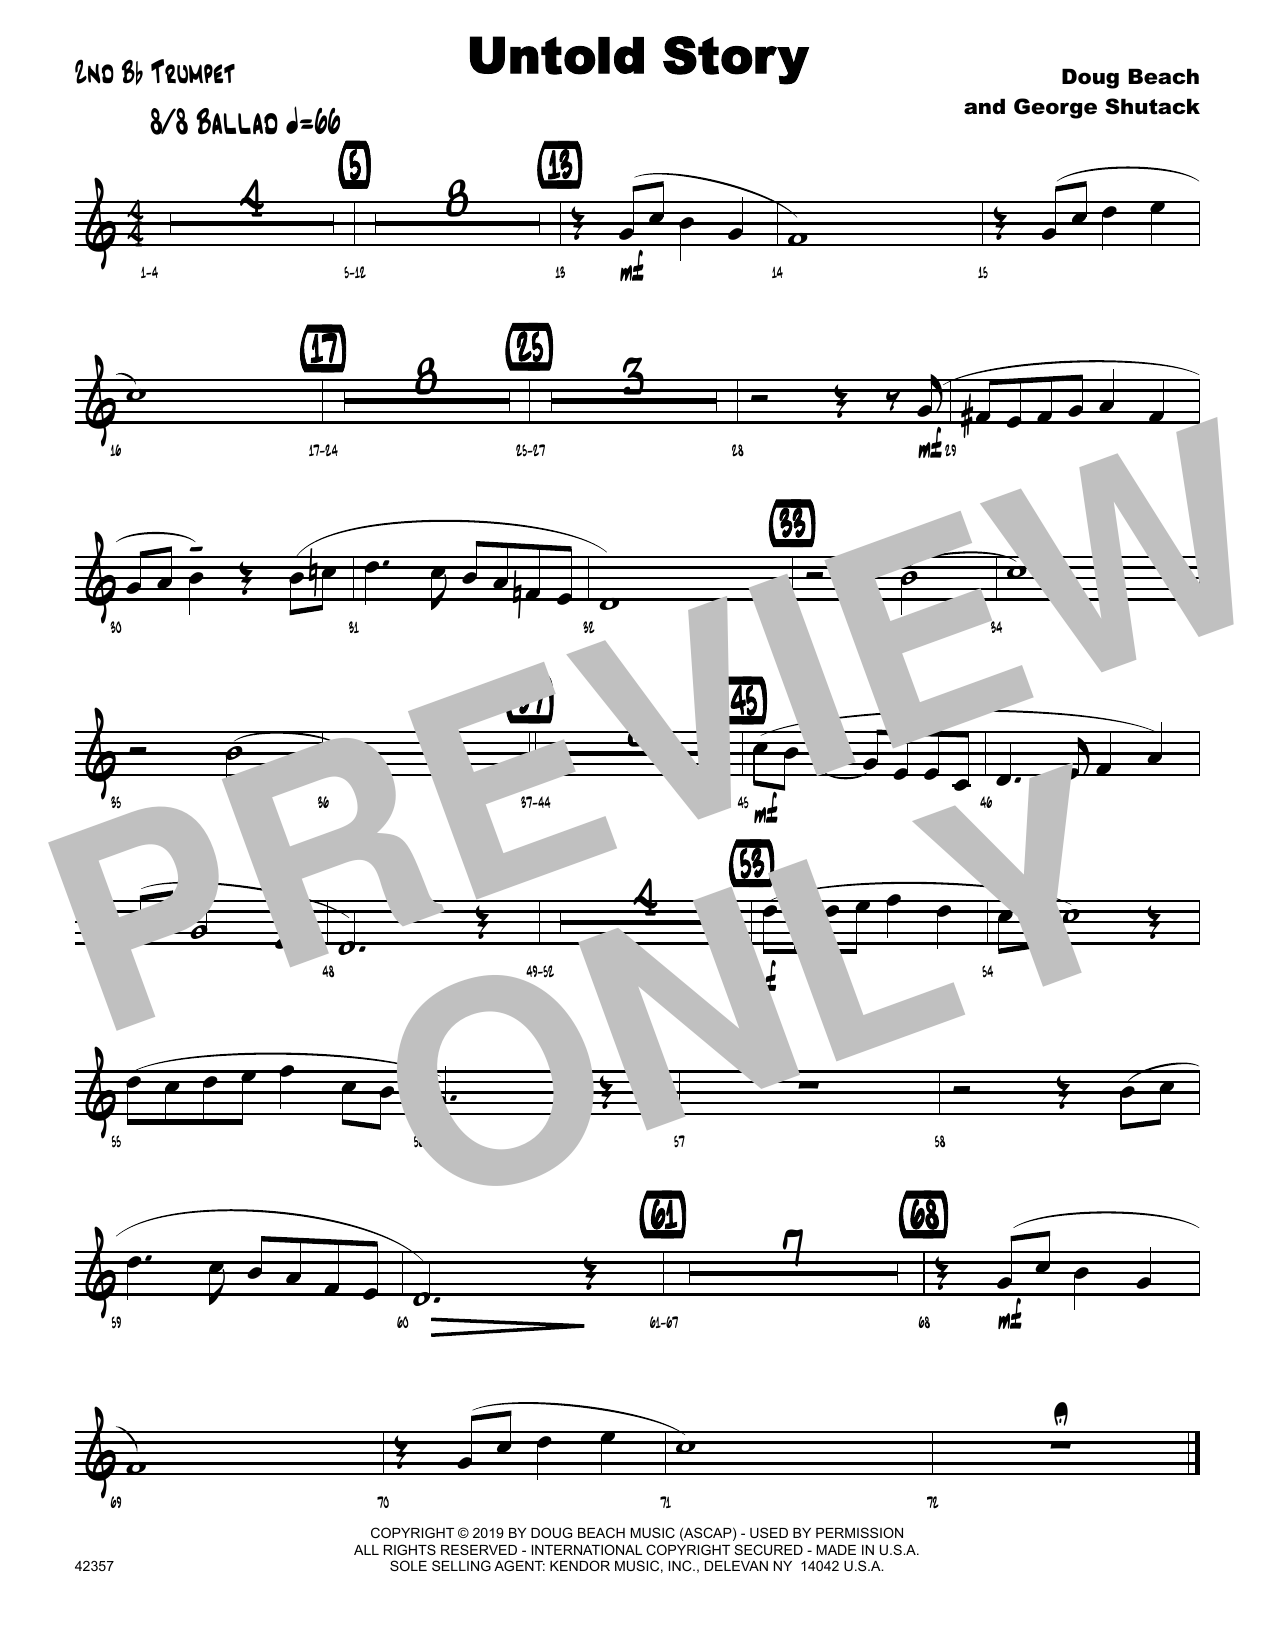 Doug Beach & George Shutack Untold Story - 2nd Bb Trumpet sheet music notes and chords. Download Printable PDF.